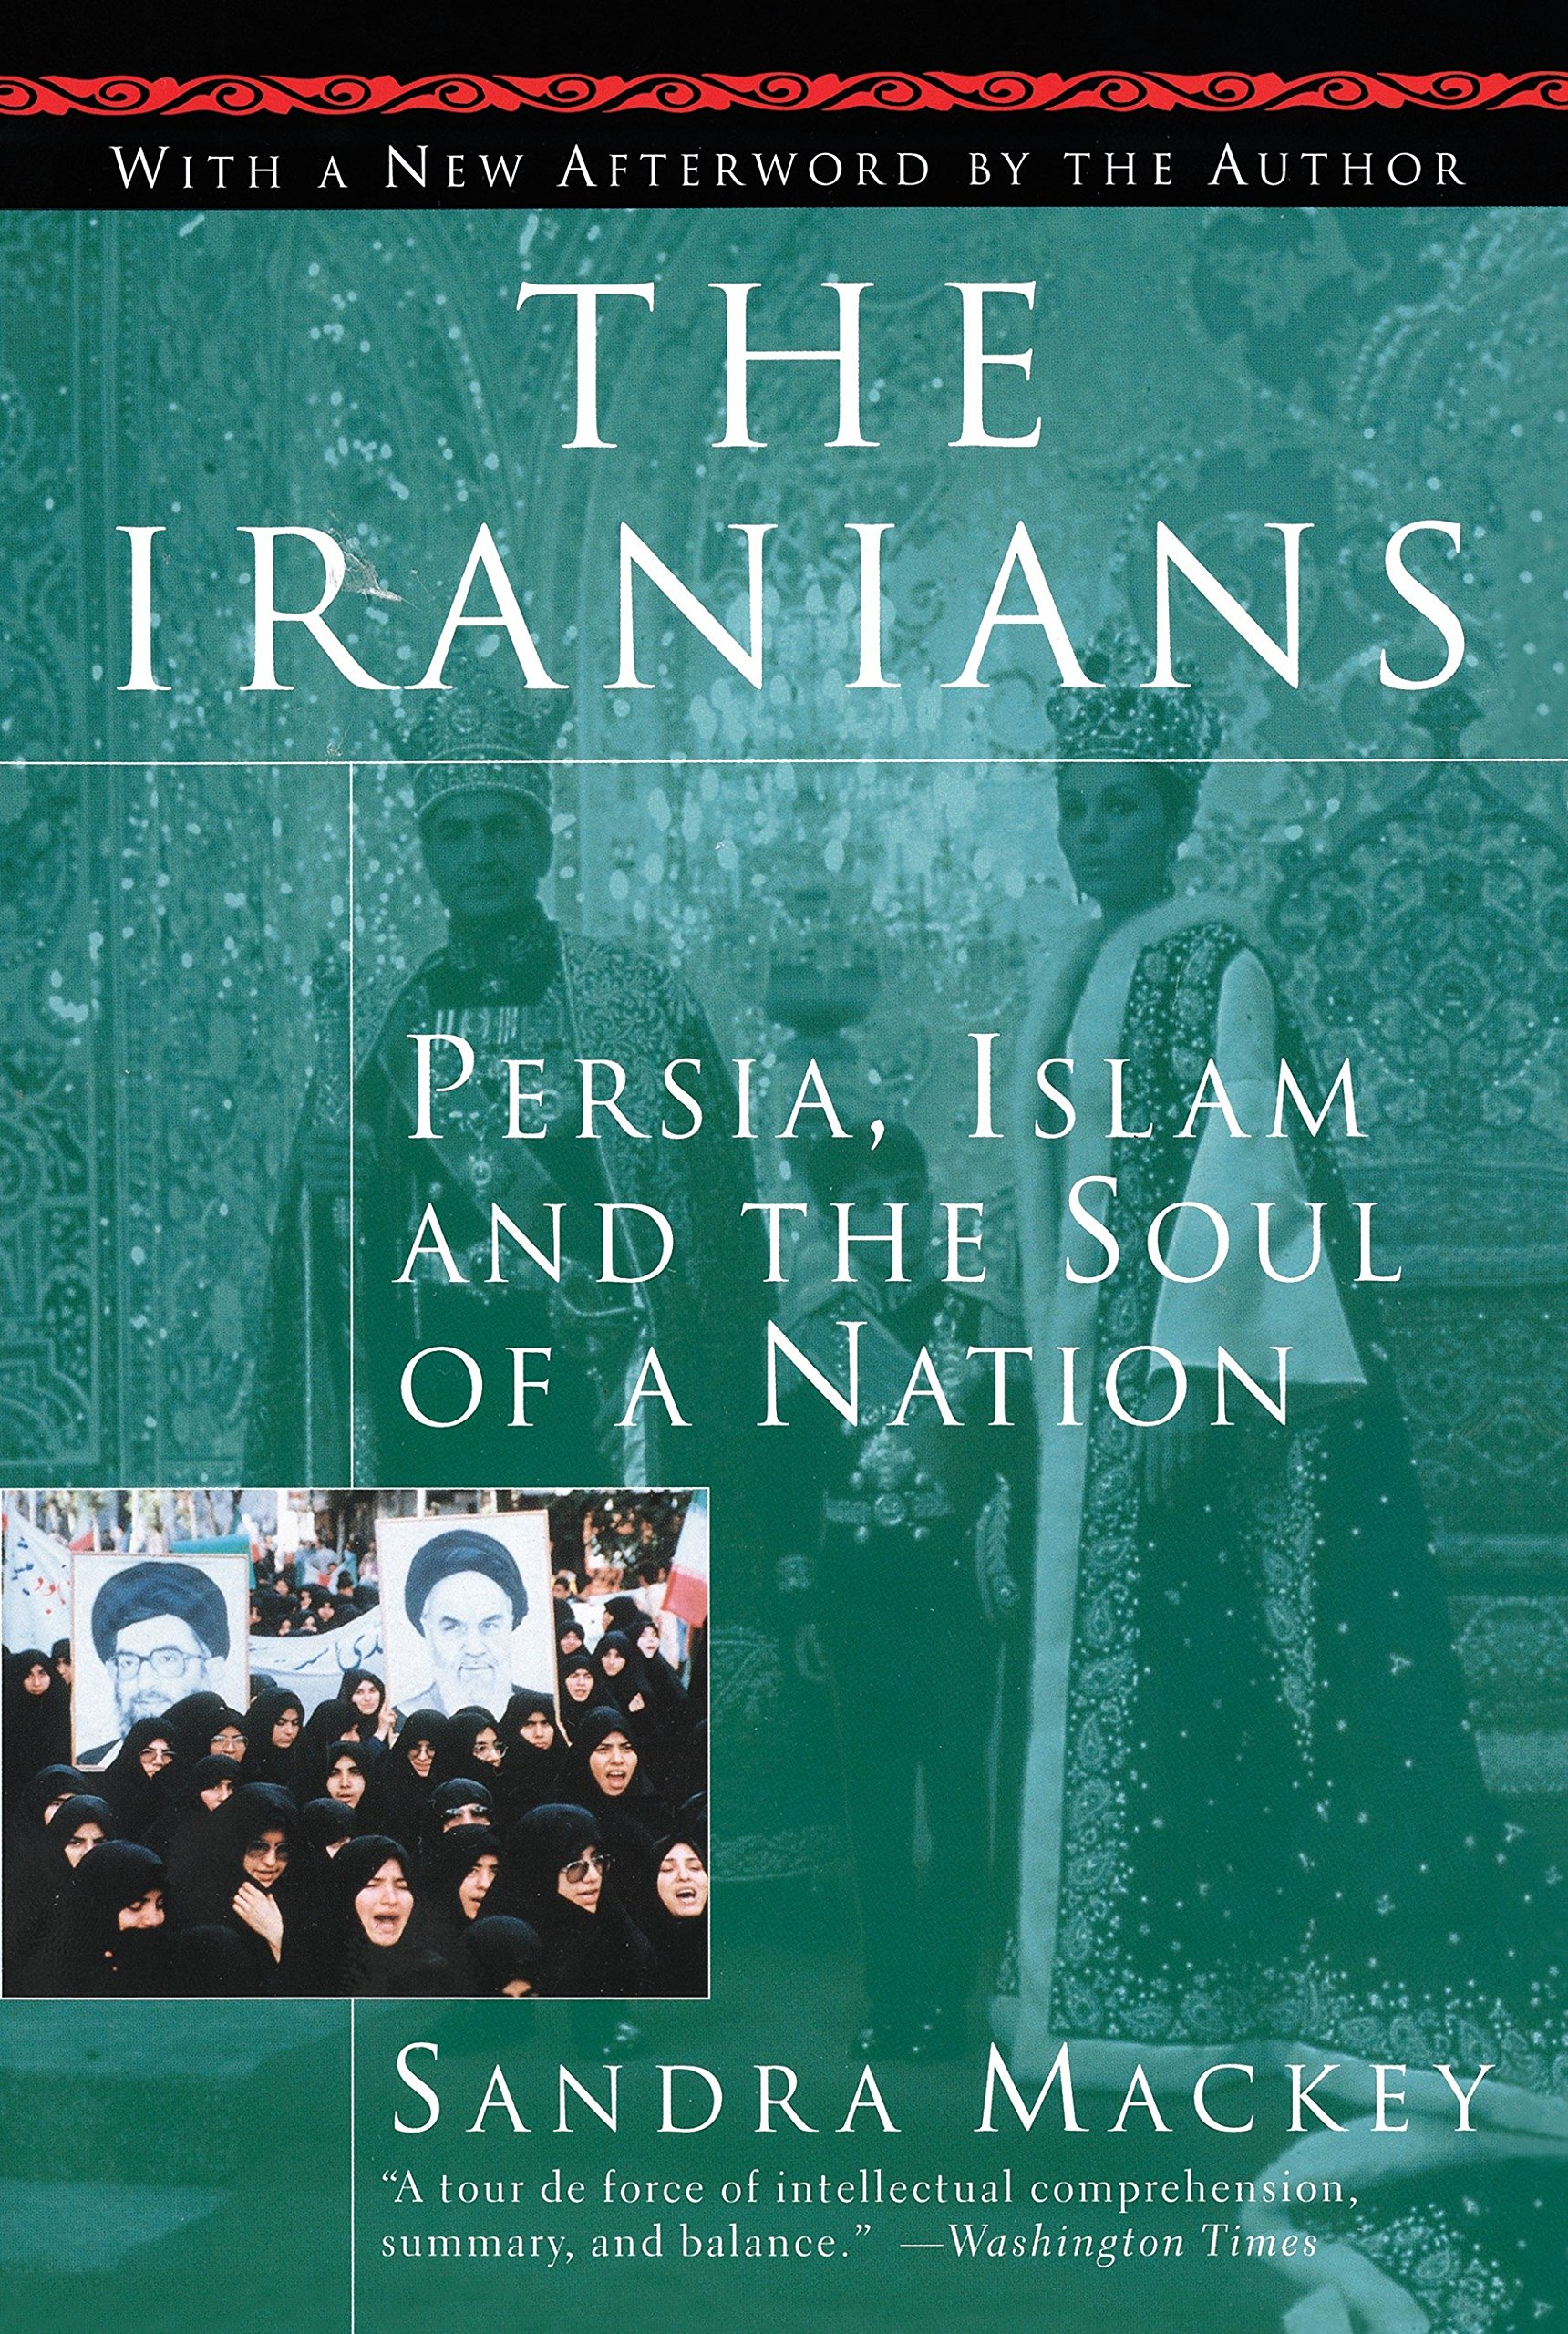 The Iranians: Persia, Islam and the Soul of a Nation: Sandra Mackey ...